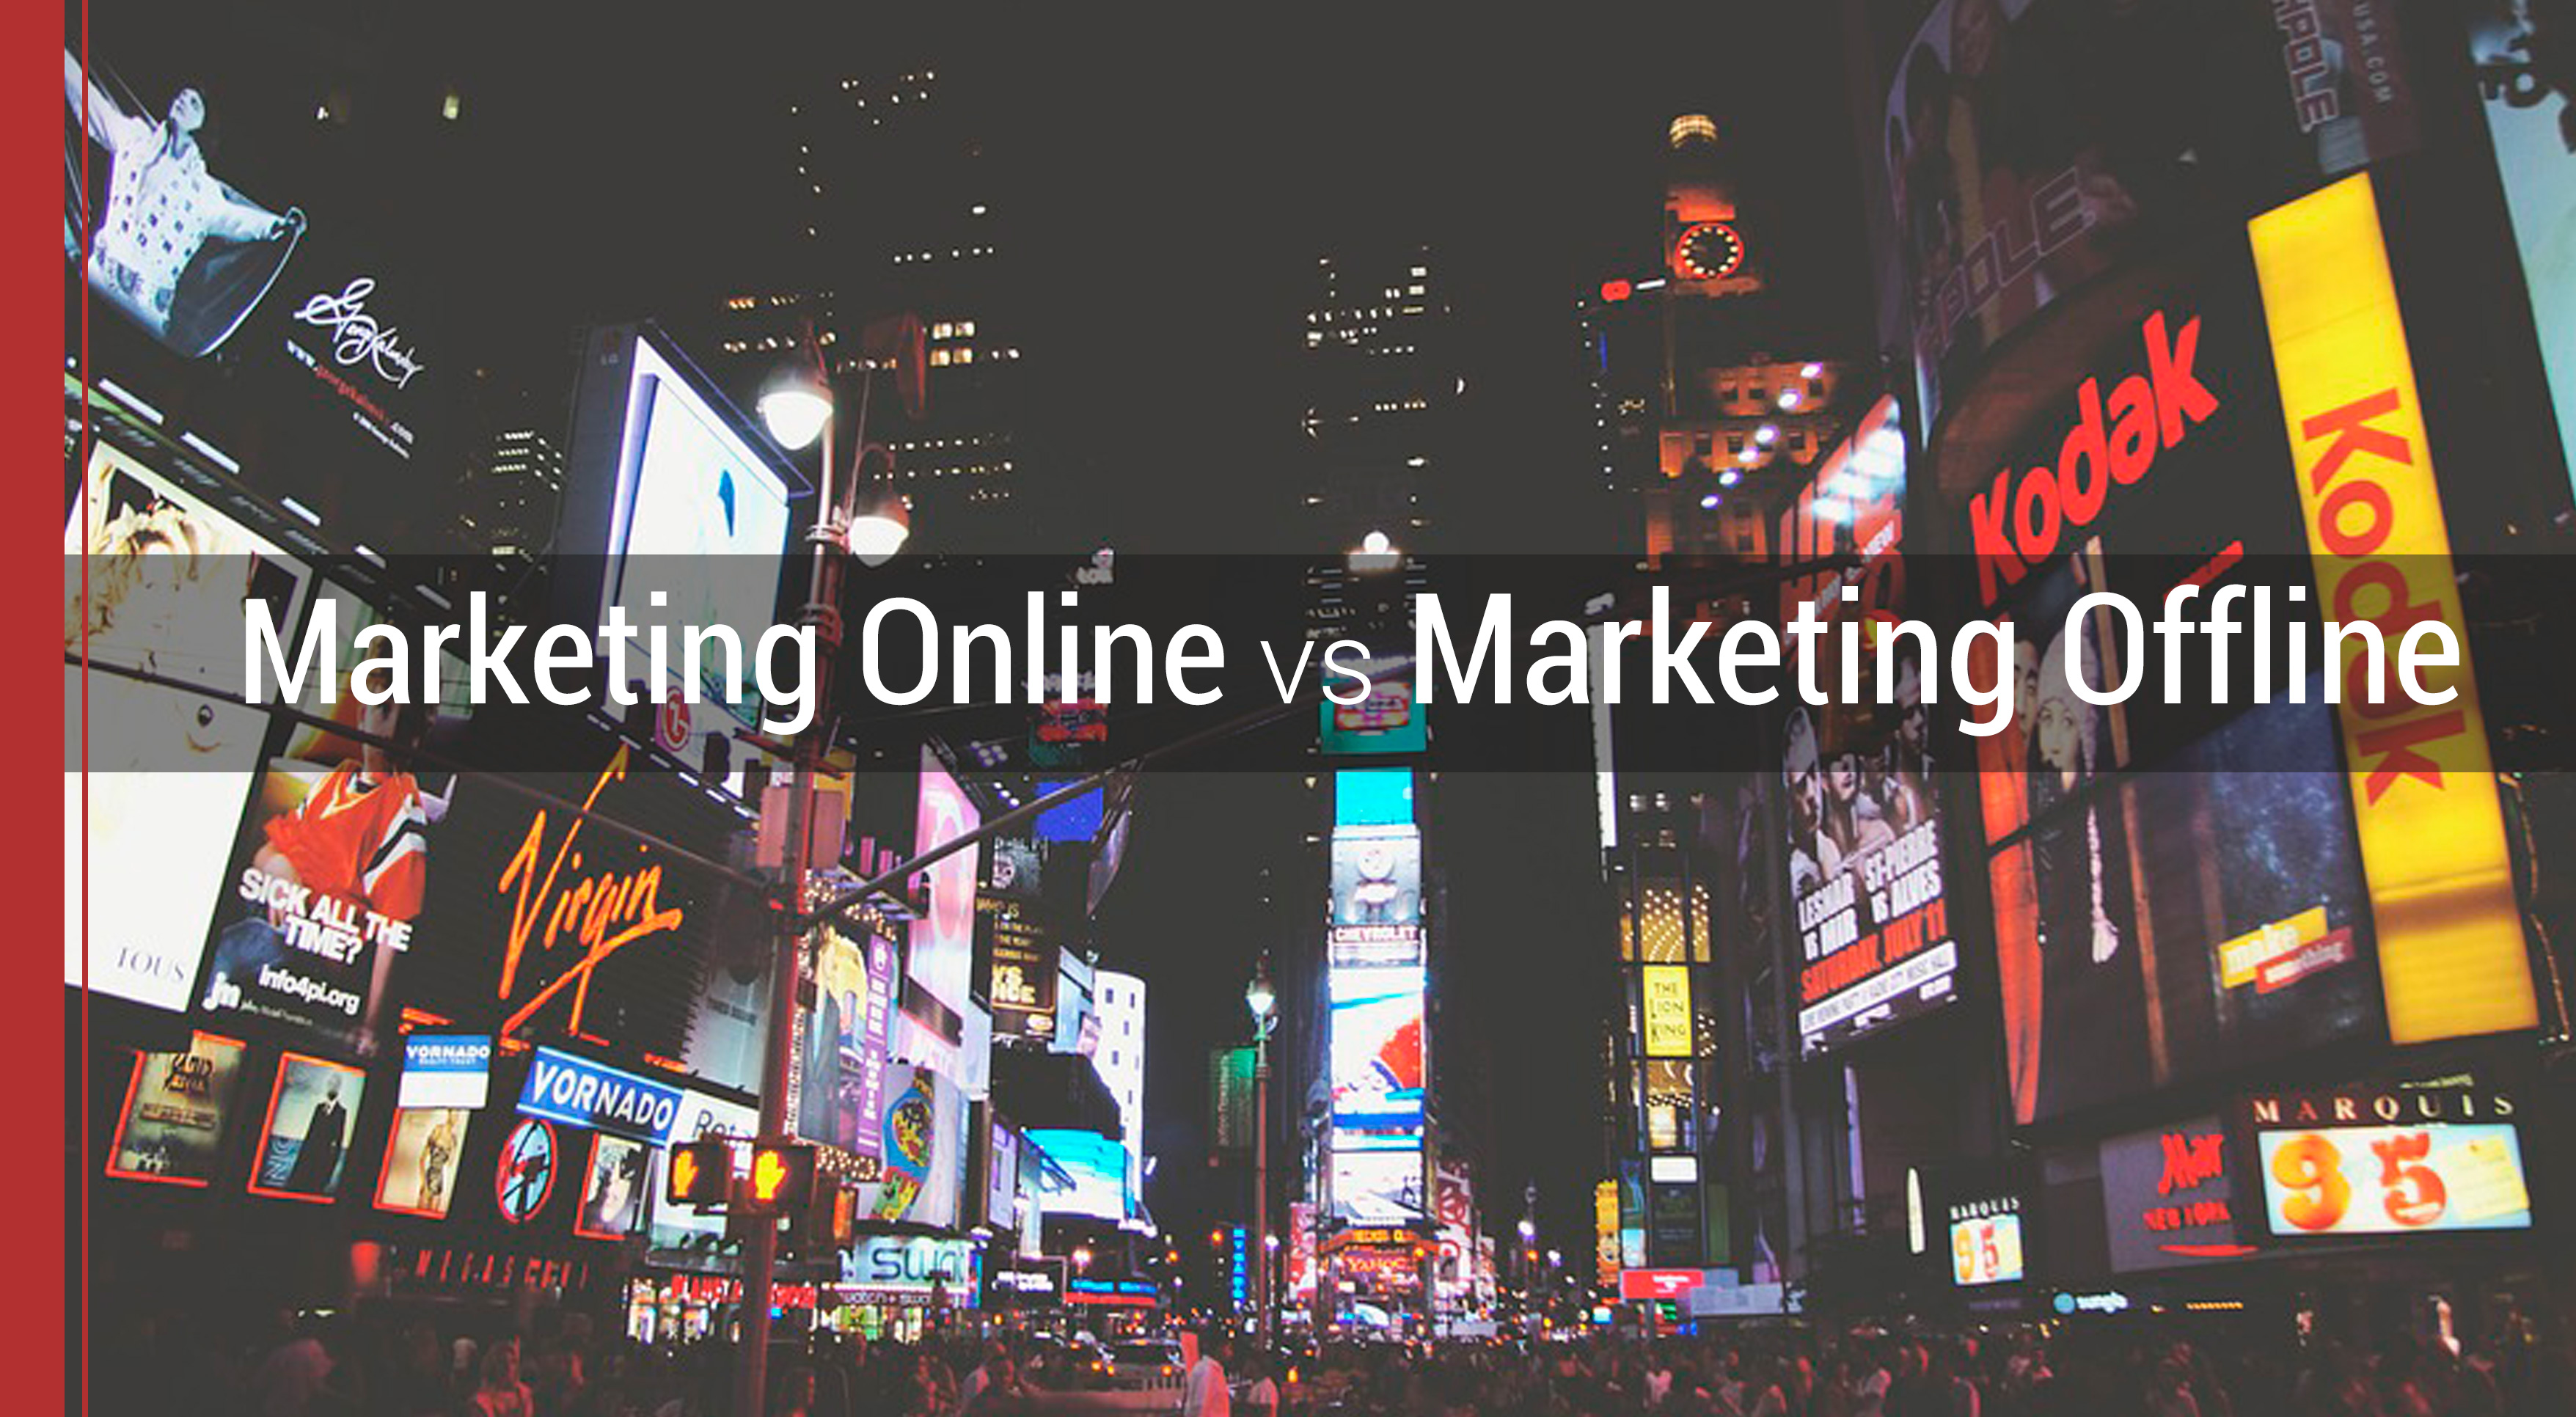 estrategias de marketing offline y online